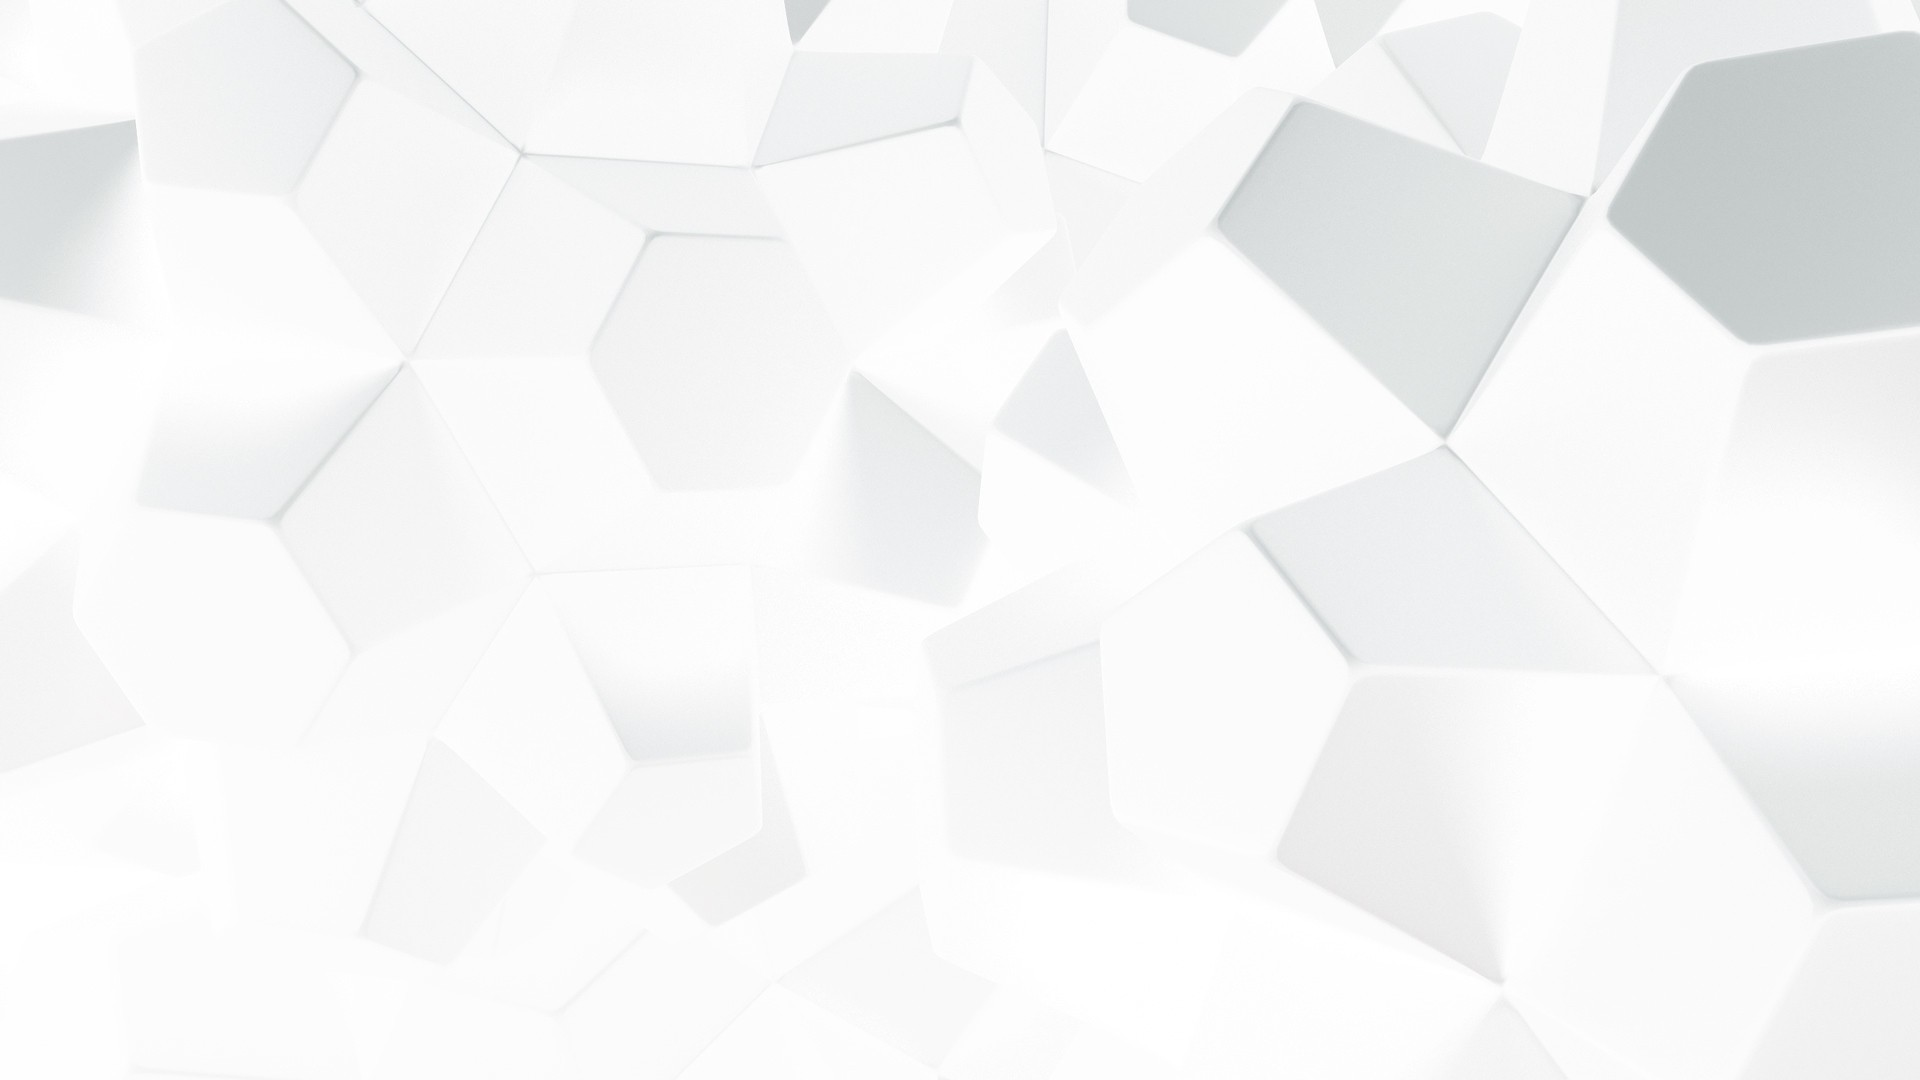 White background download free full hd wallpapers for - White abstract background hd ...